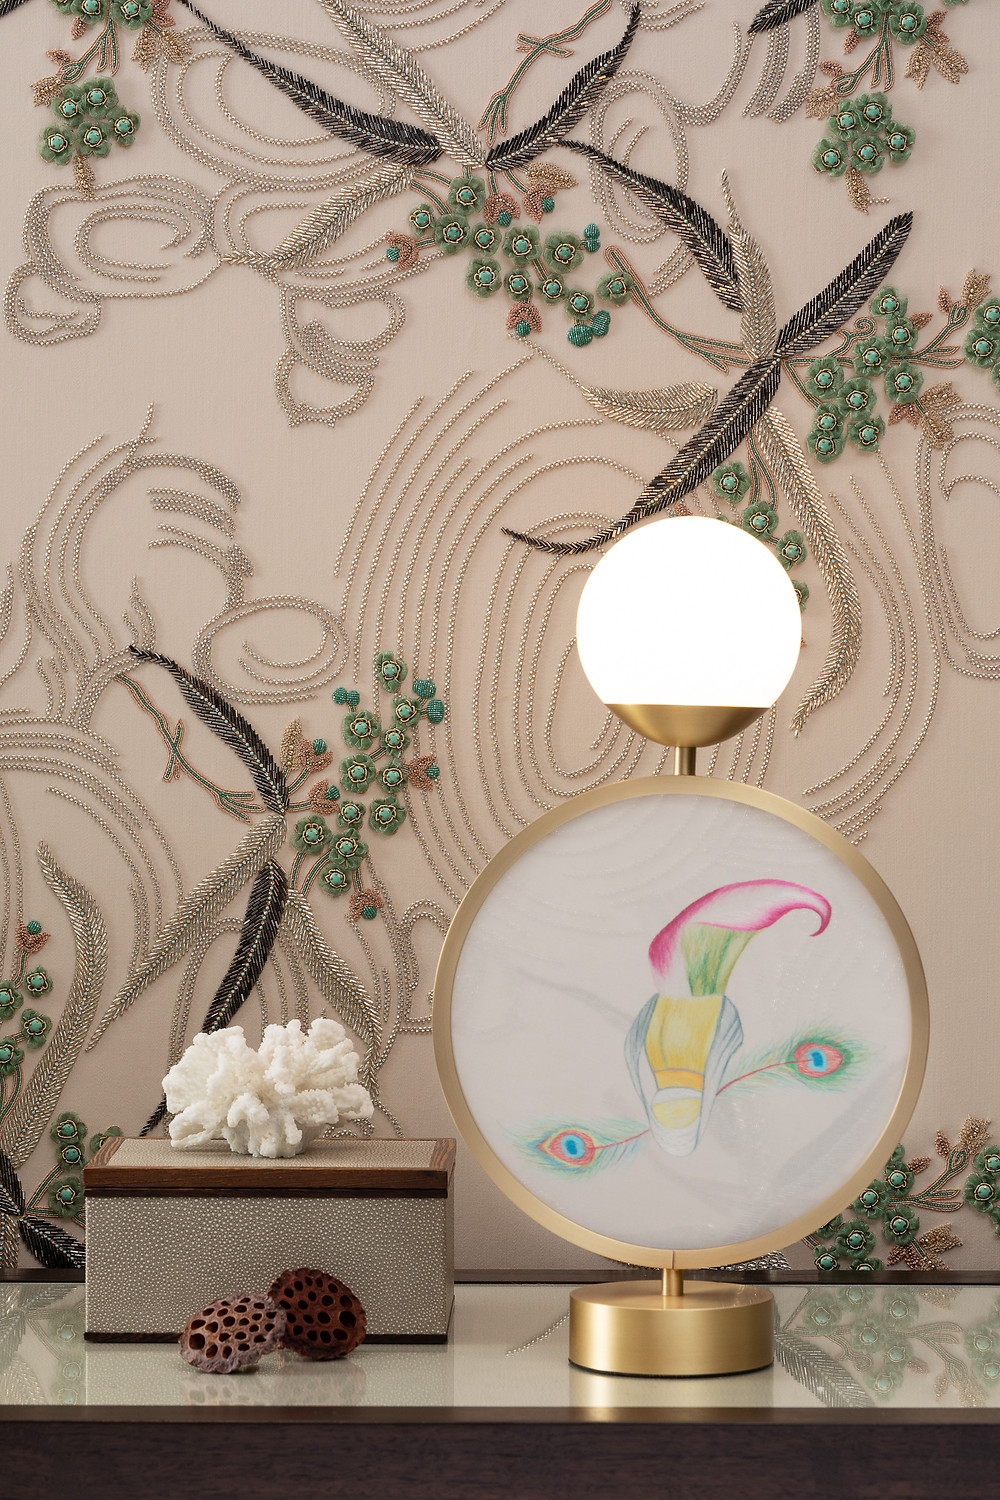 Table lamp with handmade silk embroidery panel